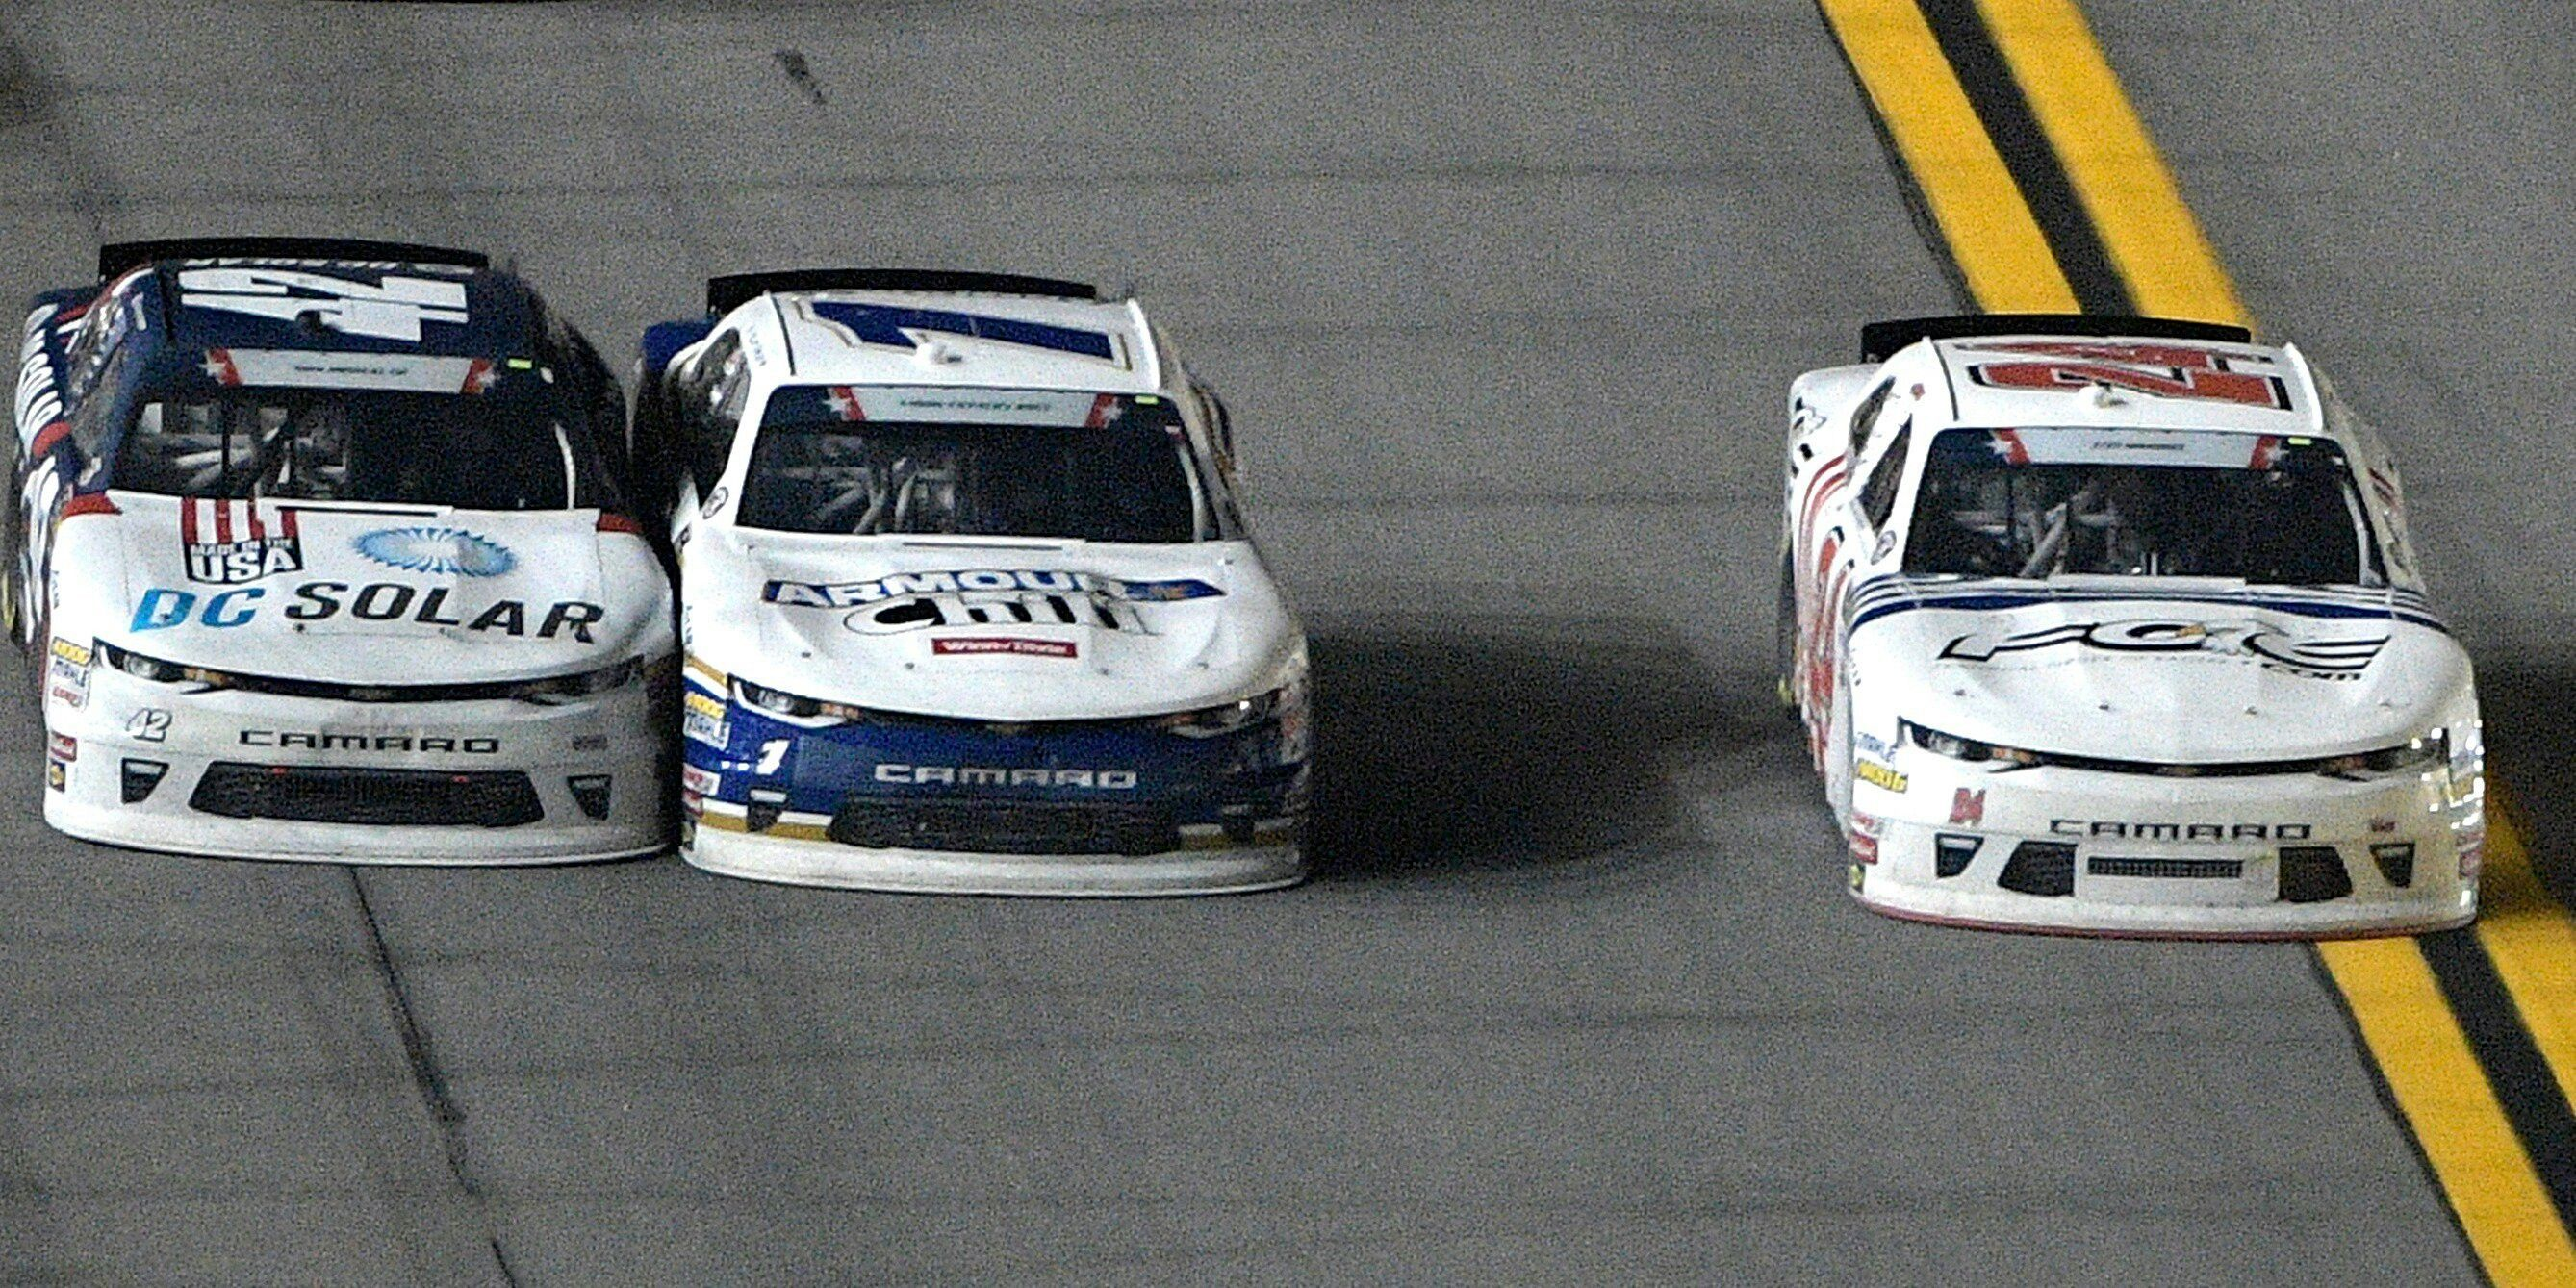 rookie justin haley goes on the yellow line to pass kyle larson rh pinterest com